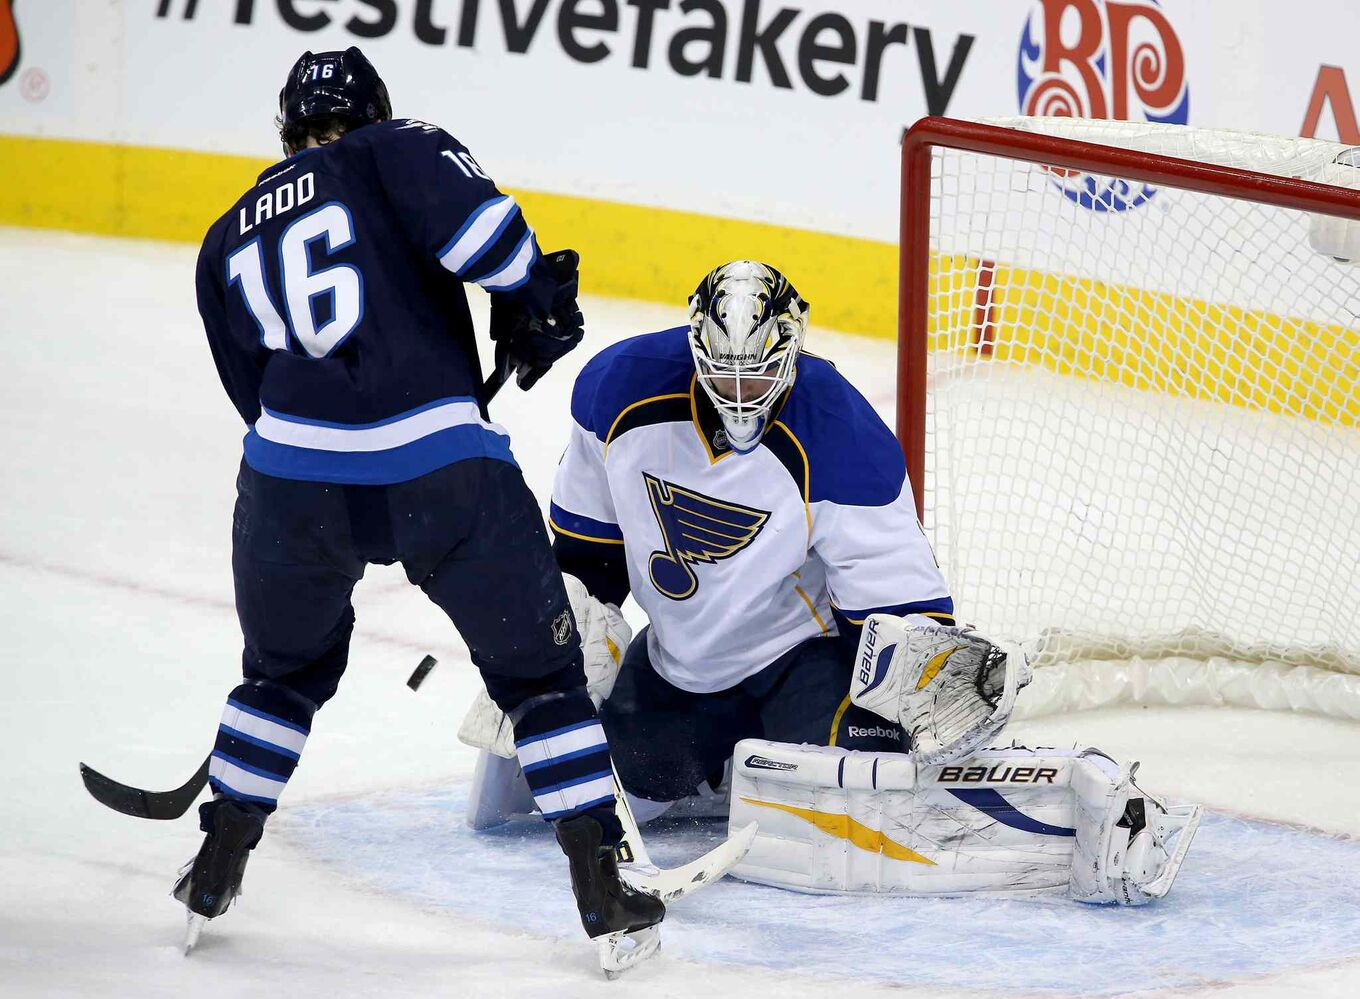 Winnipeg Jets captain Andrew Ladd tries to screen St. Louis Blues goaltender Brian Elliot during the first period.